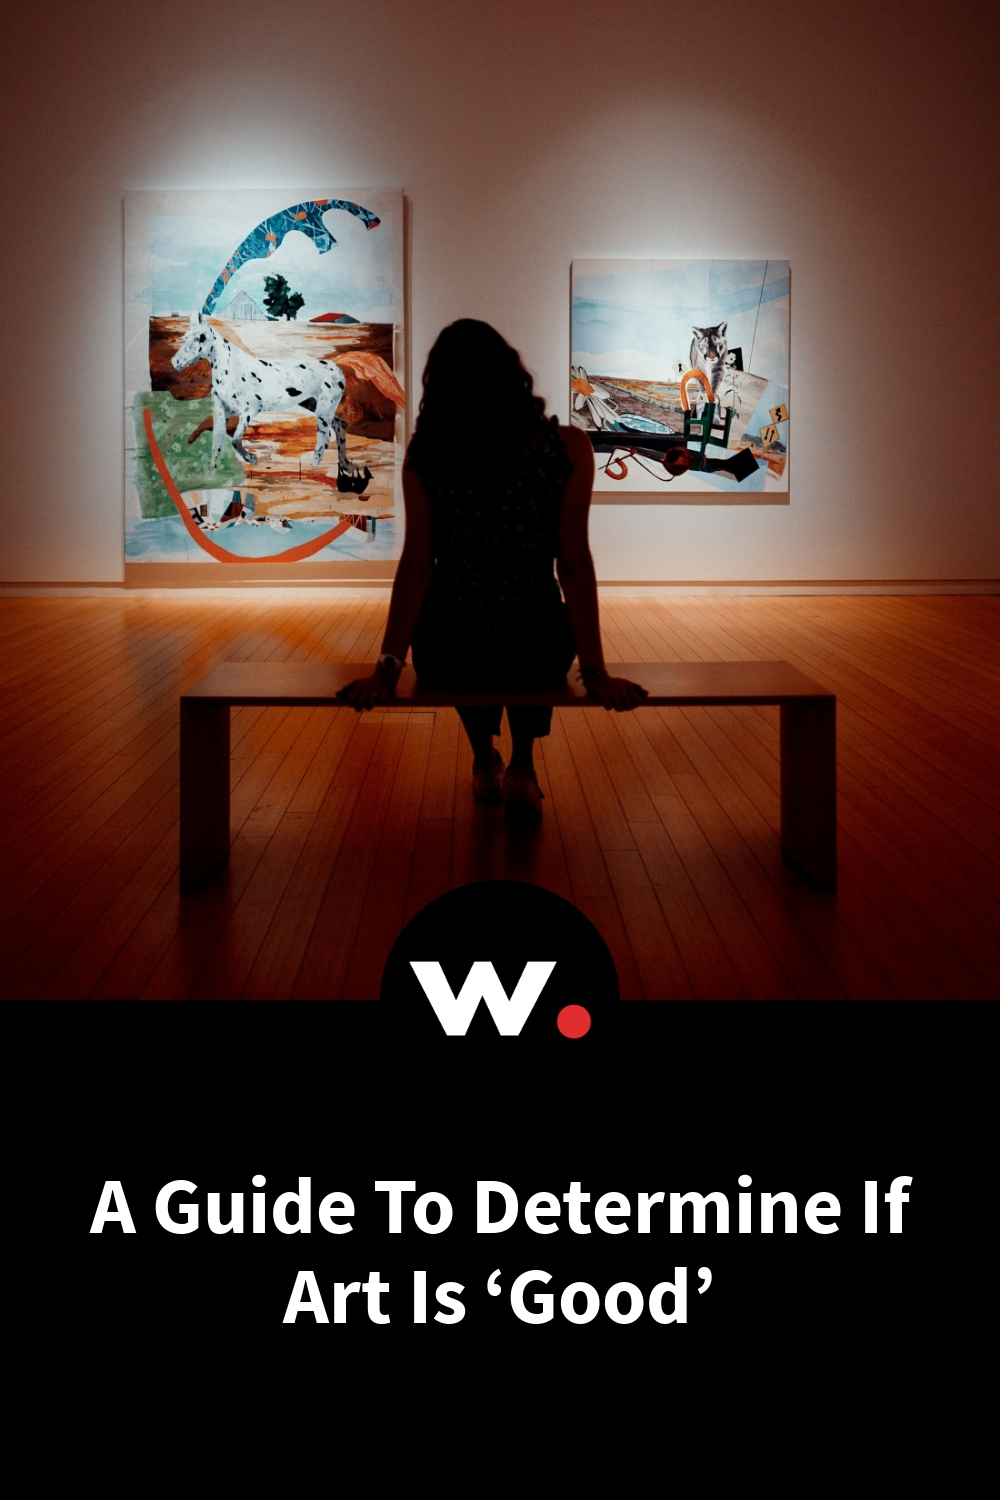 A Guide To Determine If Art Is 'Good'